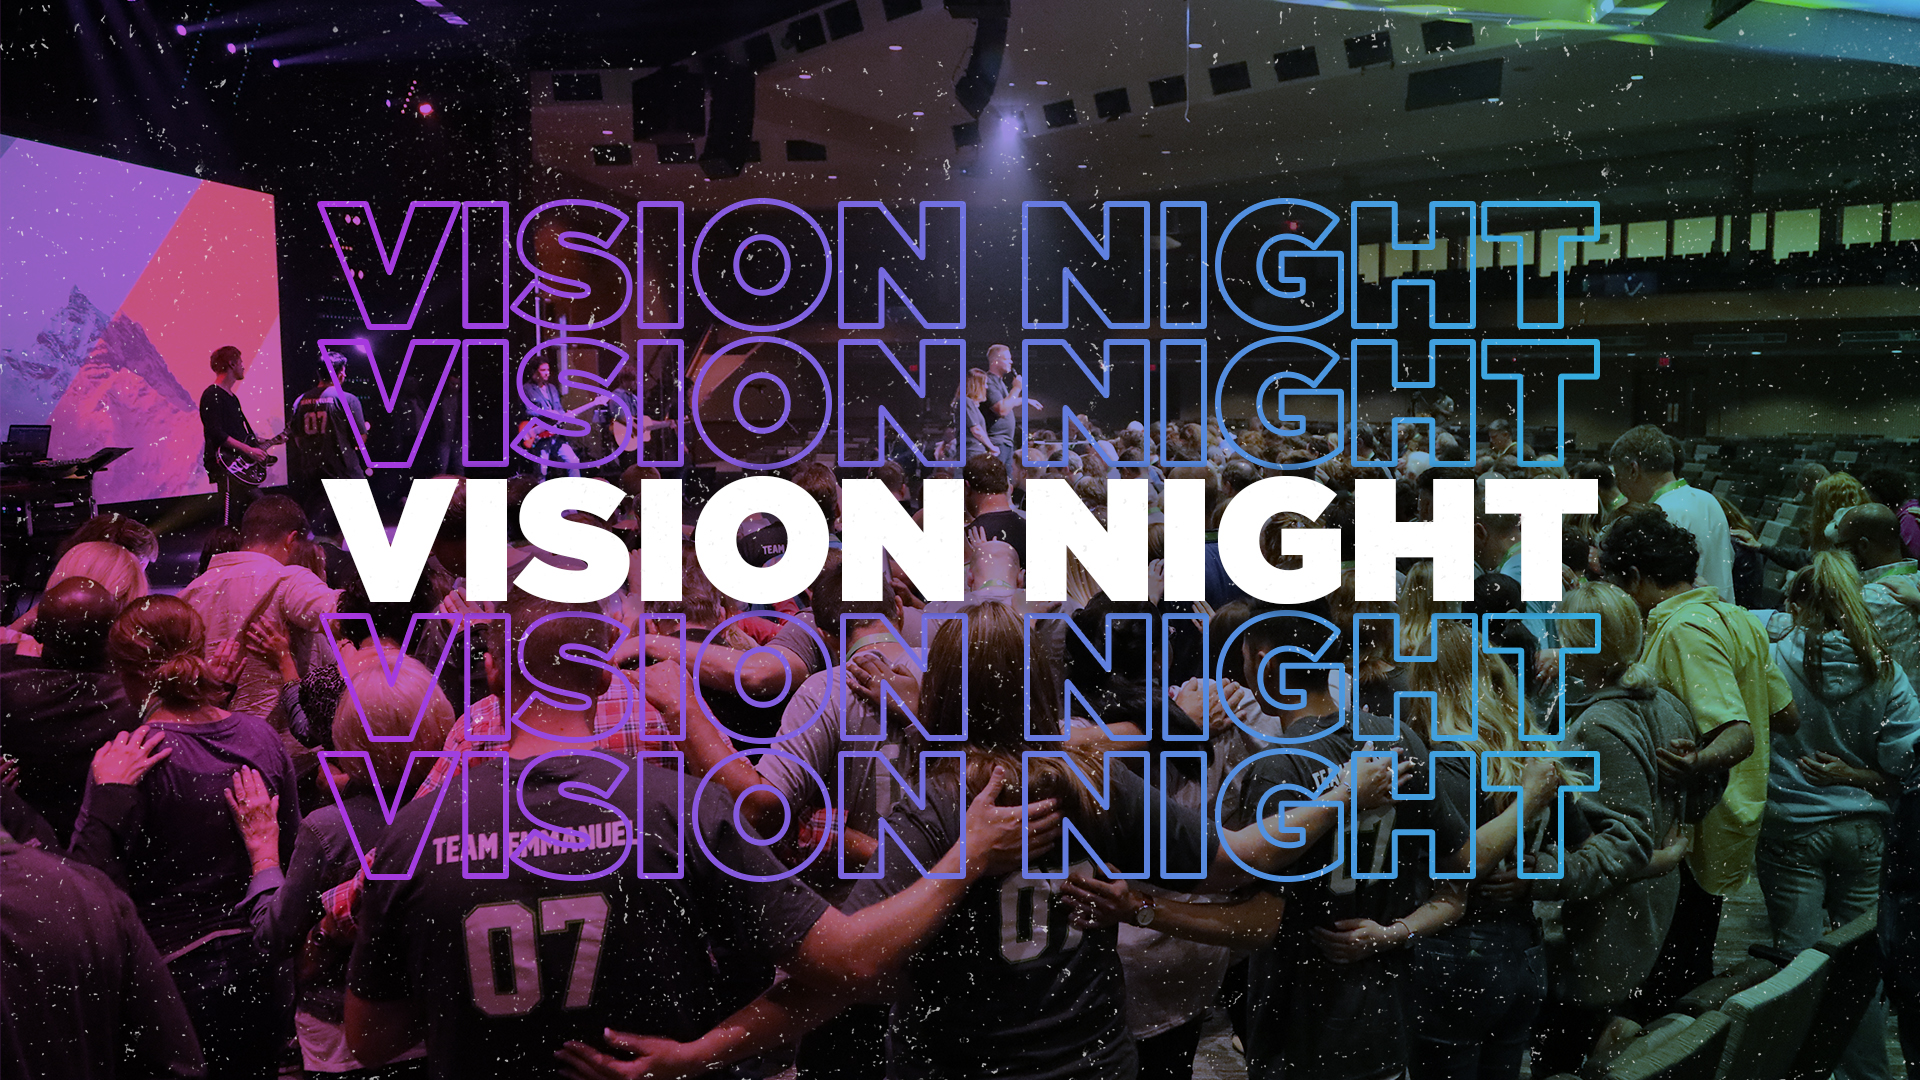 Vision Night (Annual Business Meeting)